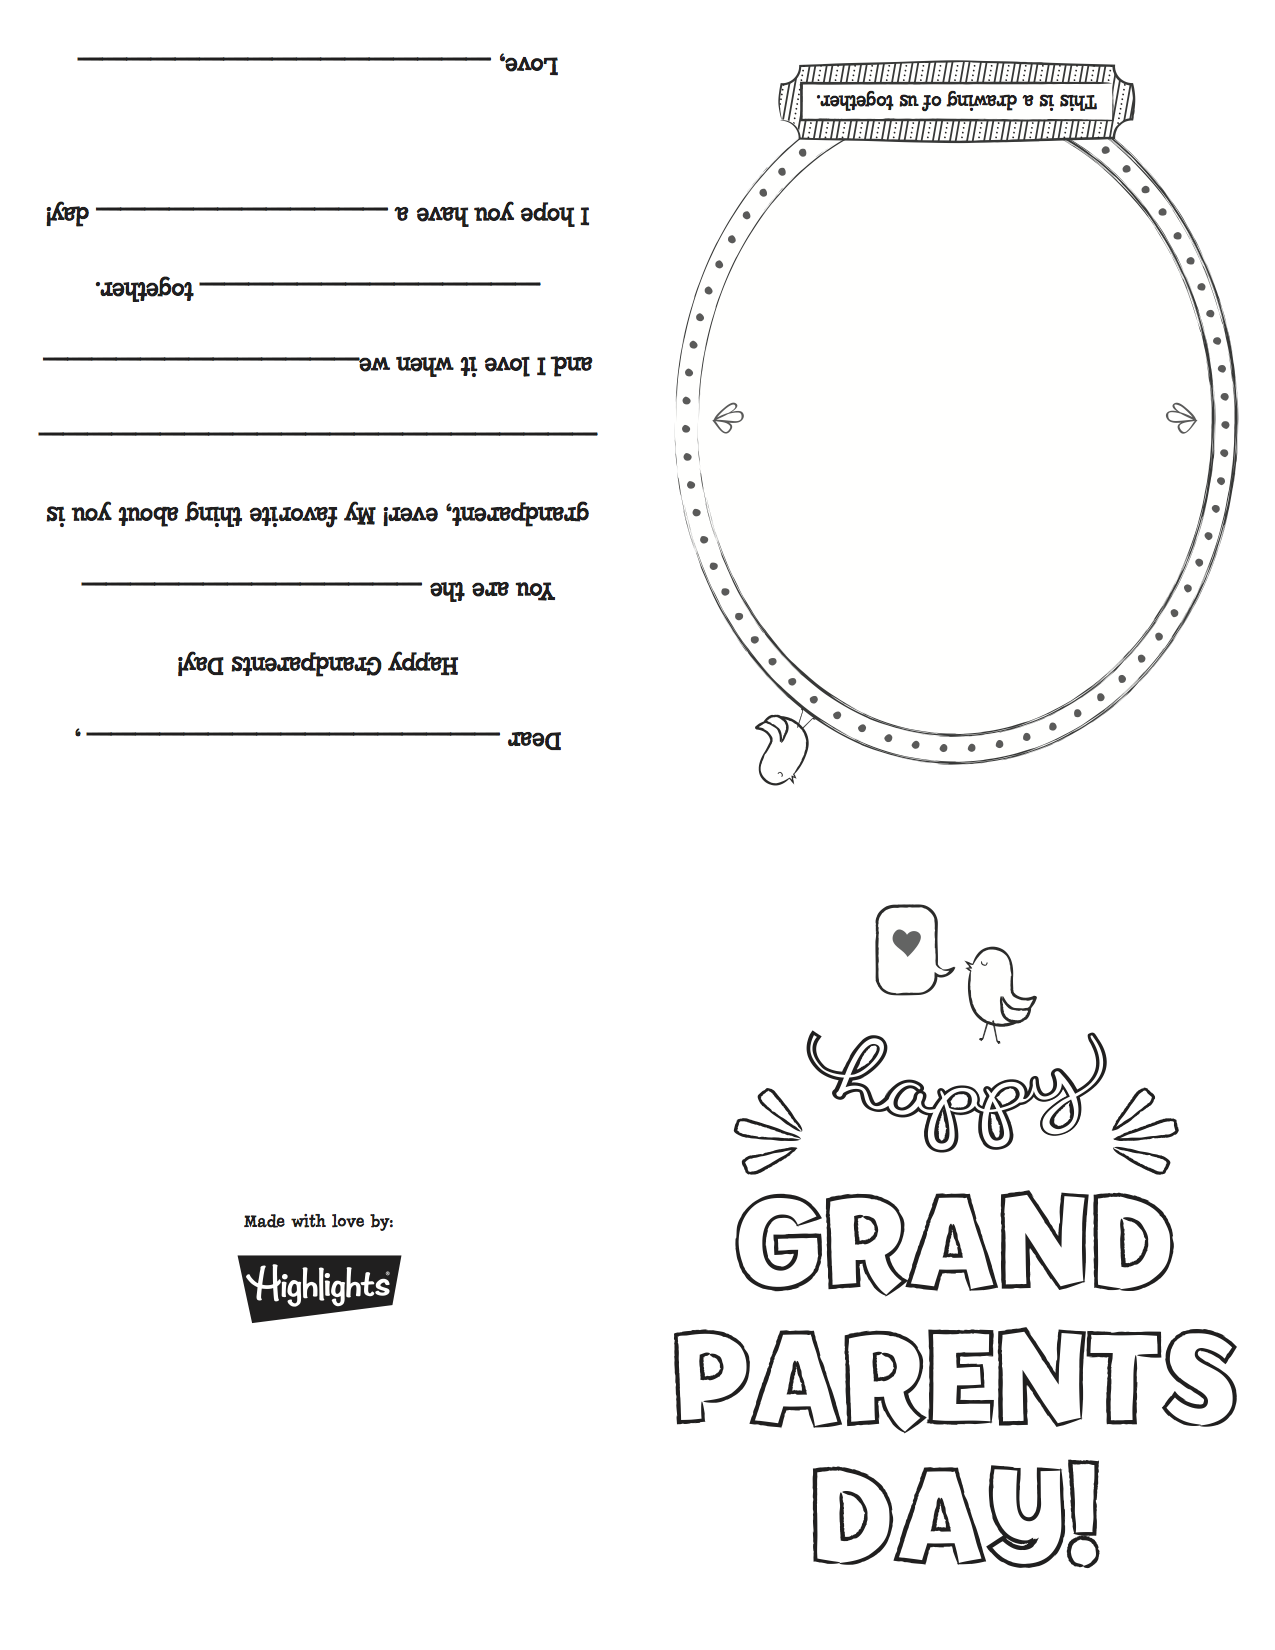 Free Printable Card For National Grandparents Day Sunday Sept 7th 2014 Grandparents Day Cards Grandparents Day Activities Happy Grandparents Day